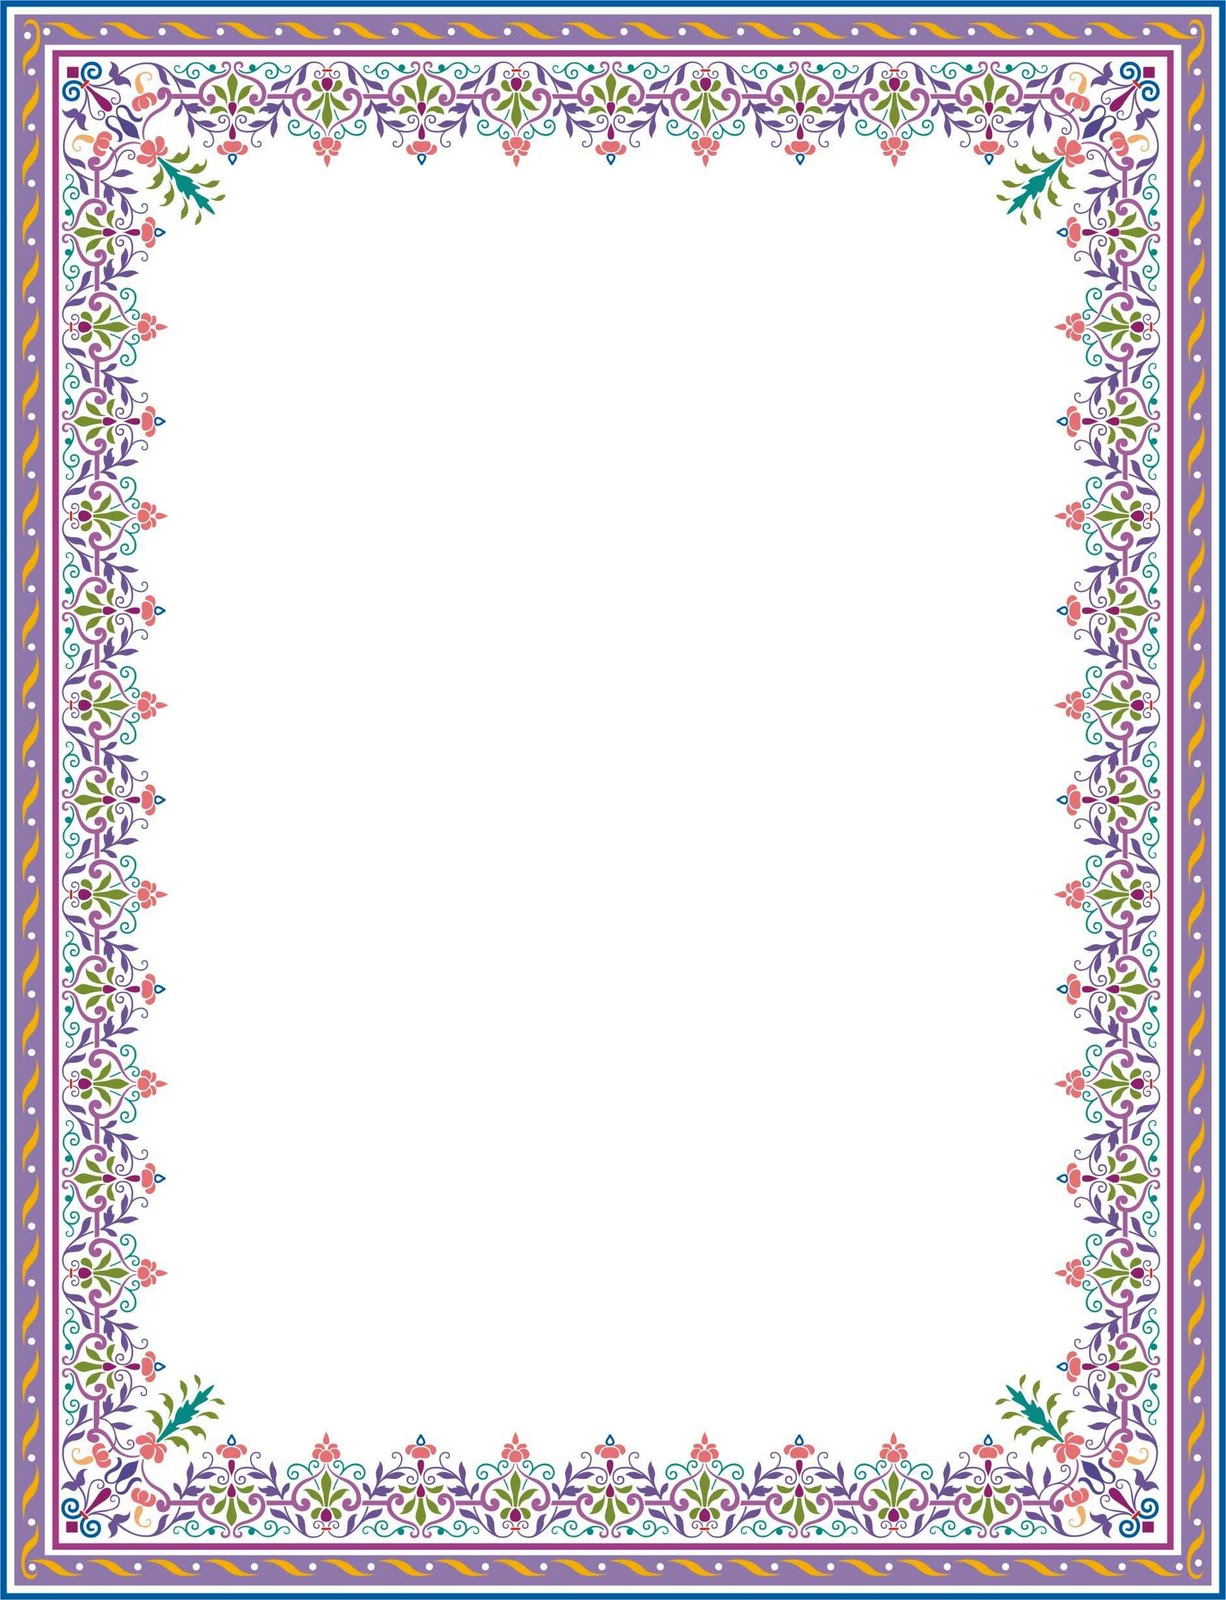 New Year Border